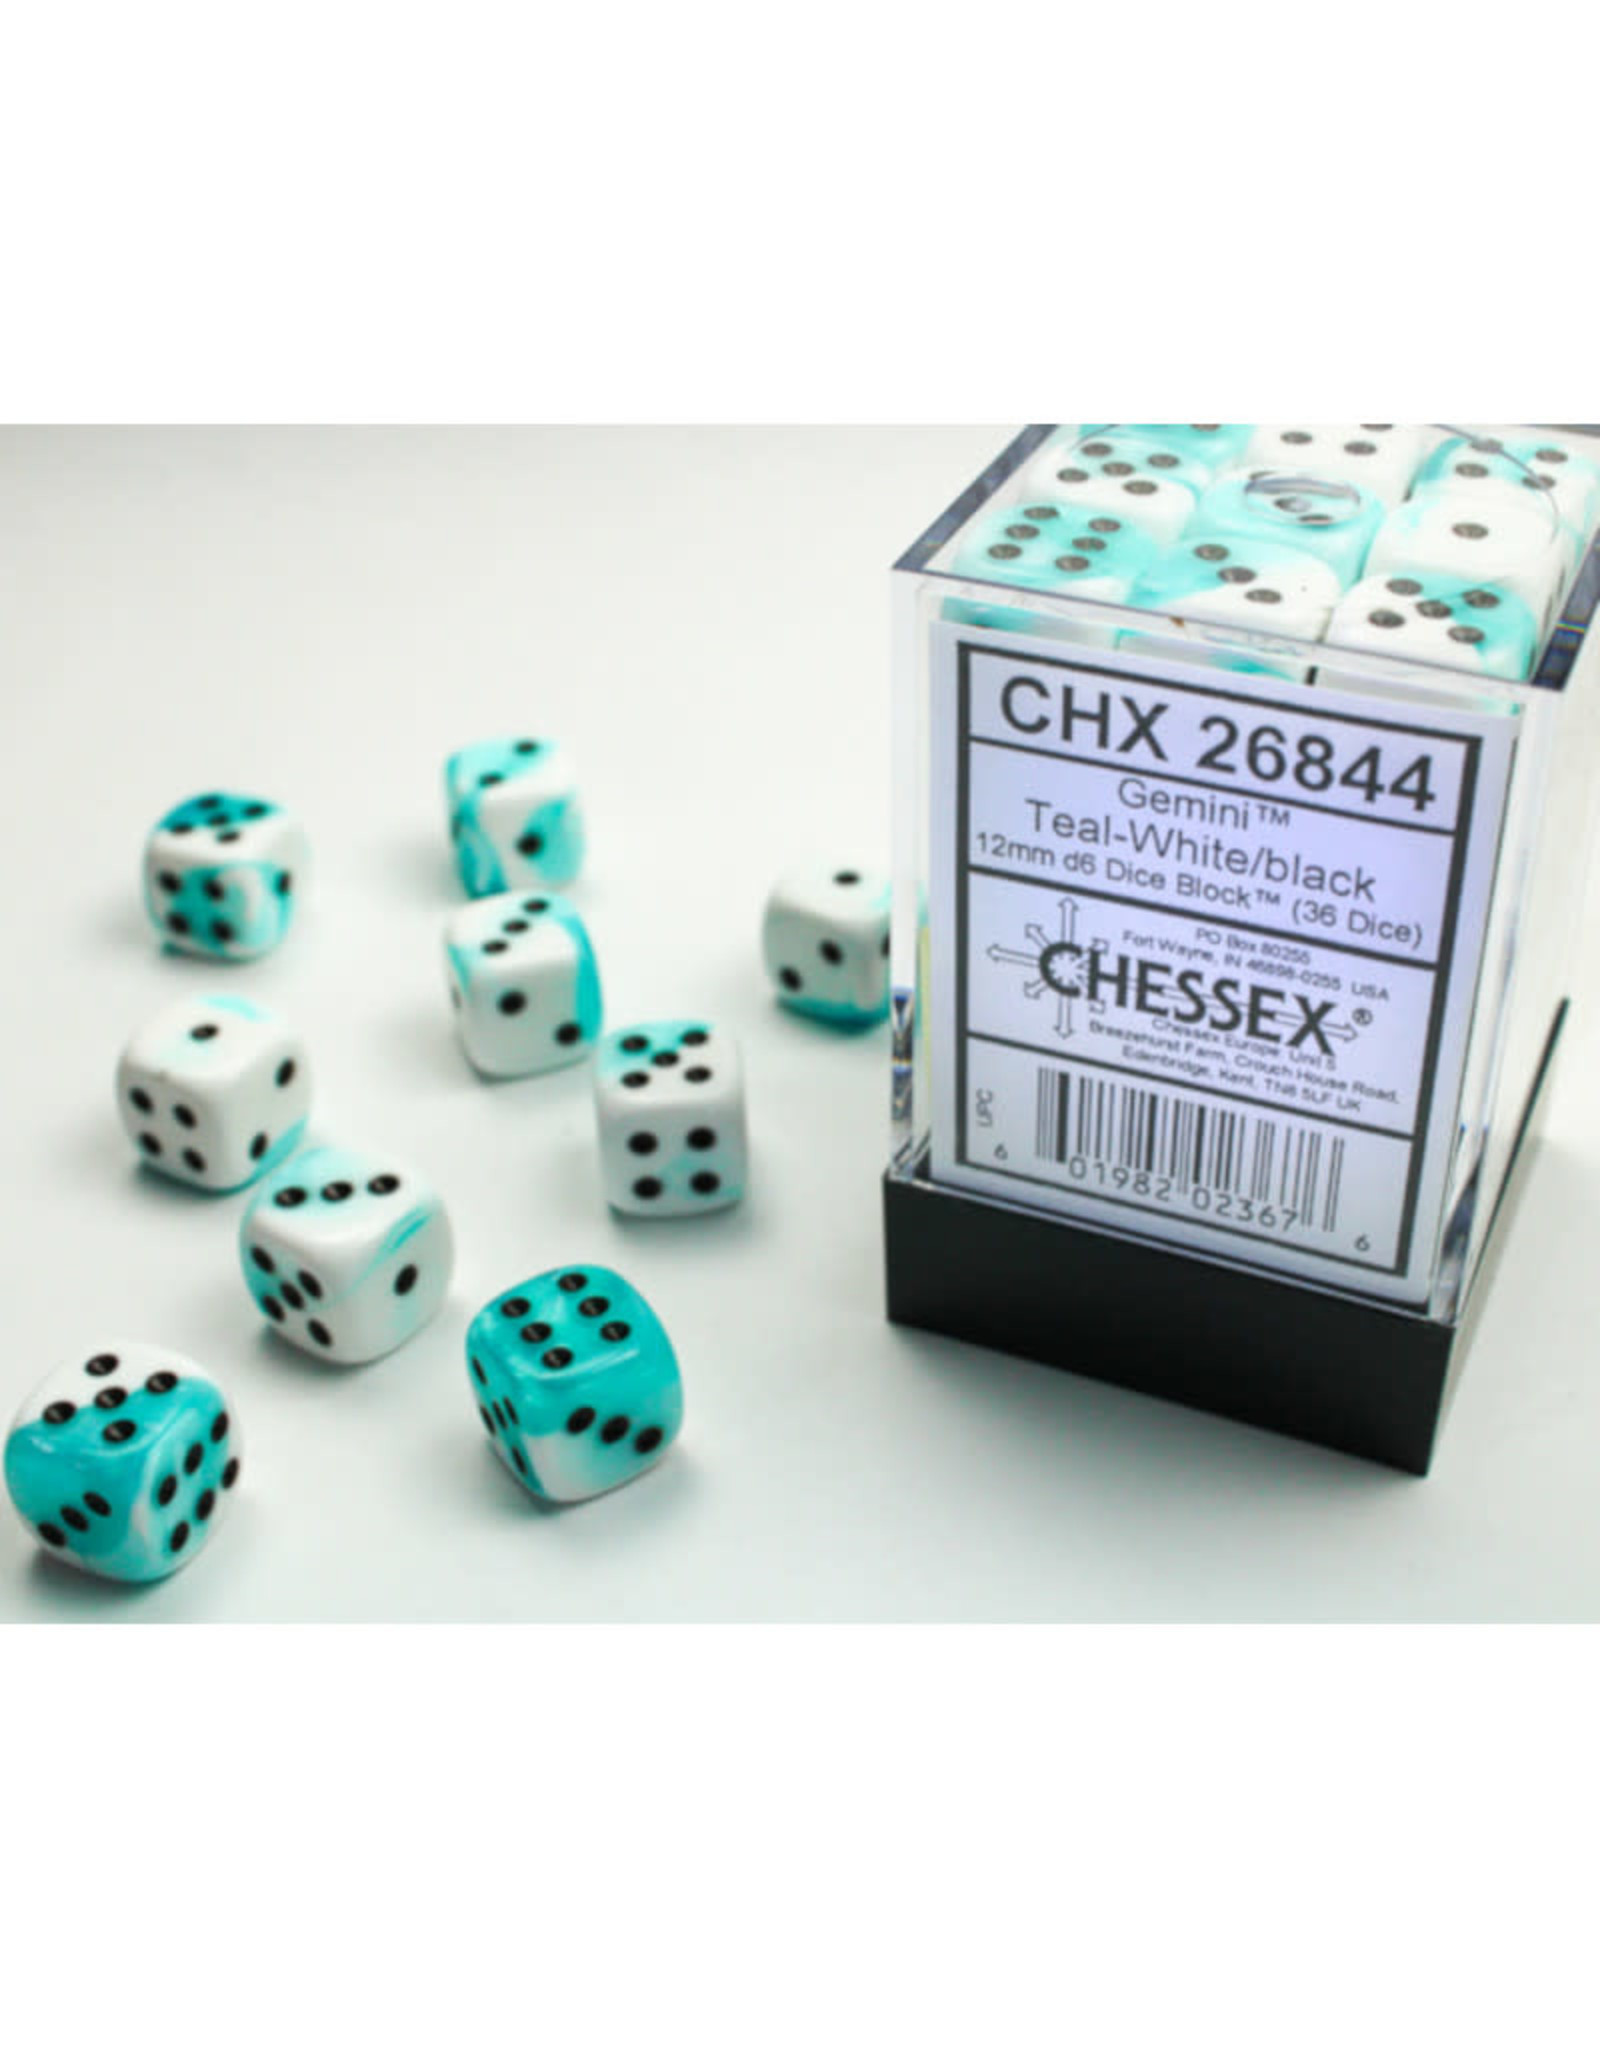 Chessex D6 Dice: 12mm Gemini Teal/White (36)